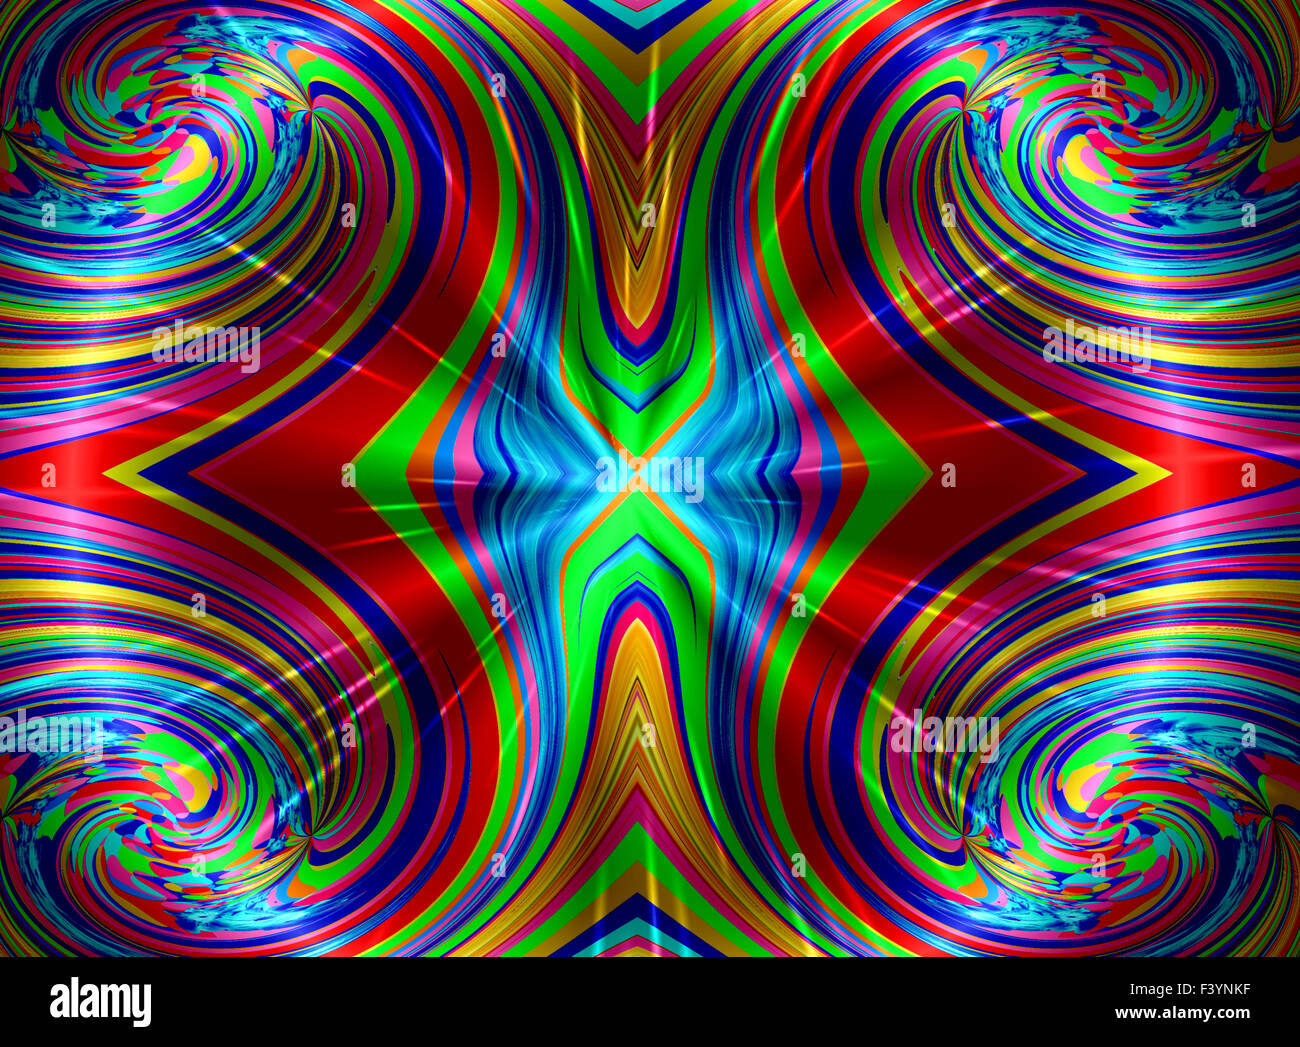 Color art kaleidoscope - Creative Background With A Wonderful Kaleidoscope Of Color Harmony A 0893